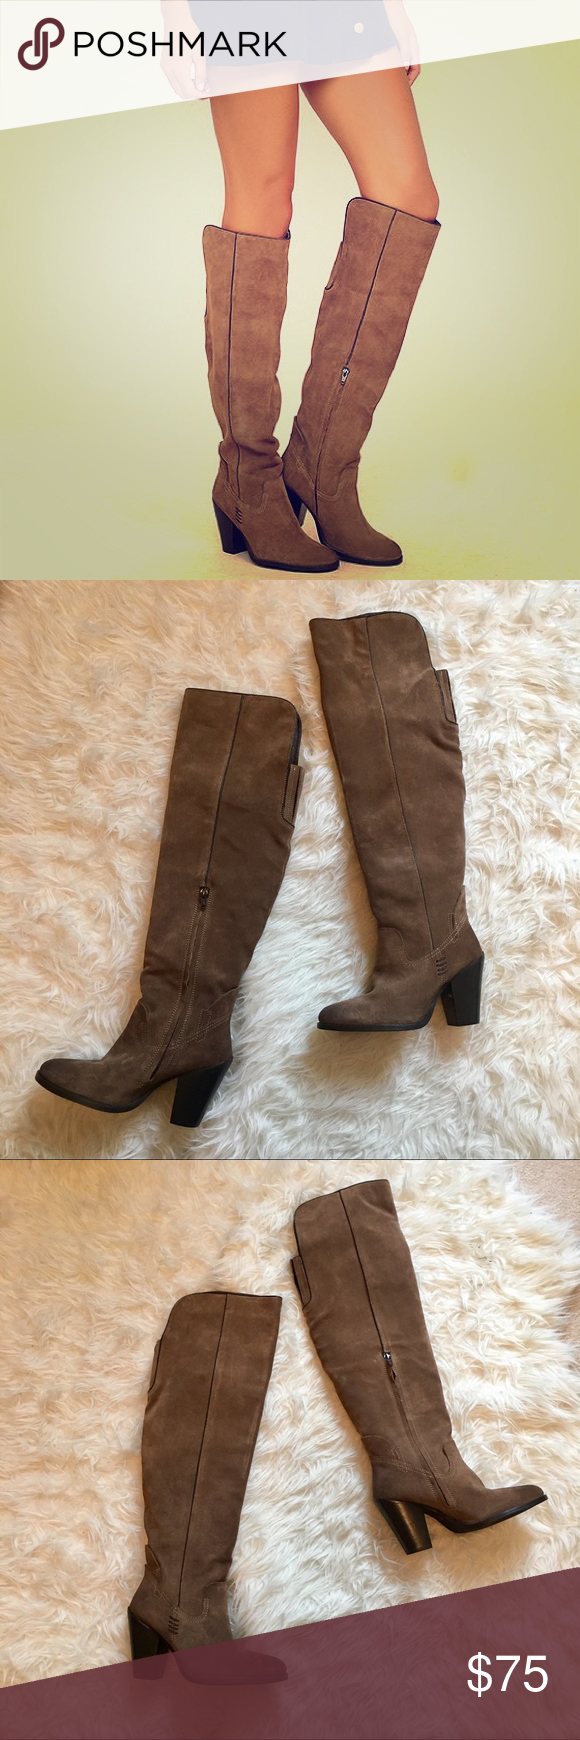 bb20f4494ce Lulu s Mia Nigel Suede Leather Knee High Boots Country meets city chic in  the Mia Nigel Taupe Suede Leather Knee High Boots! Ultra luxe genuine suede  ...